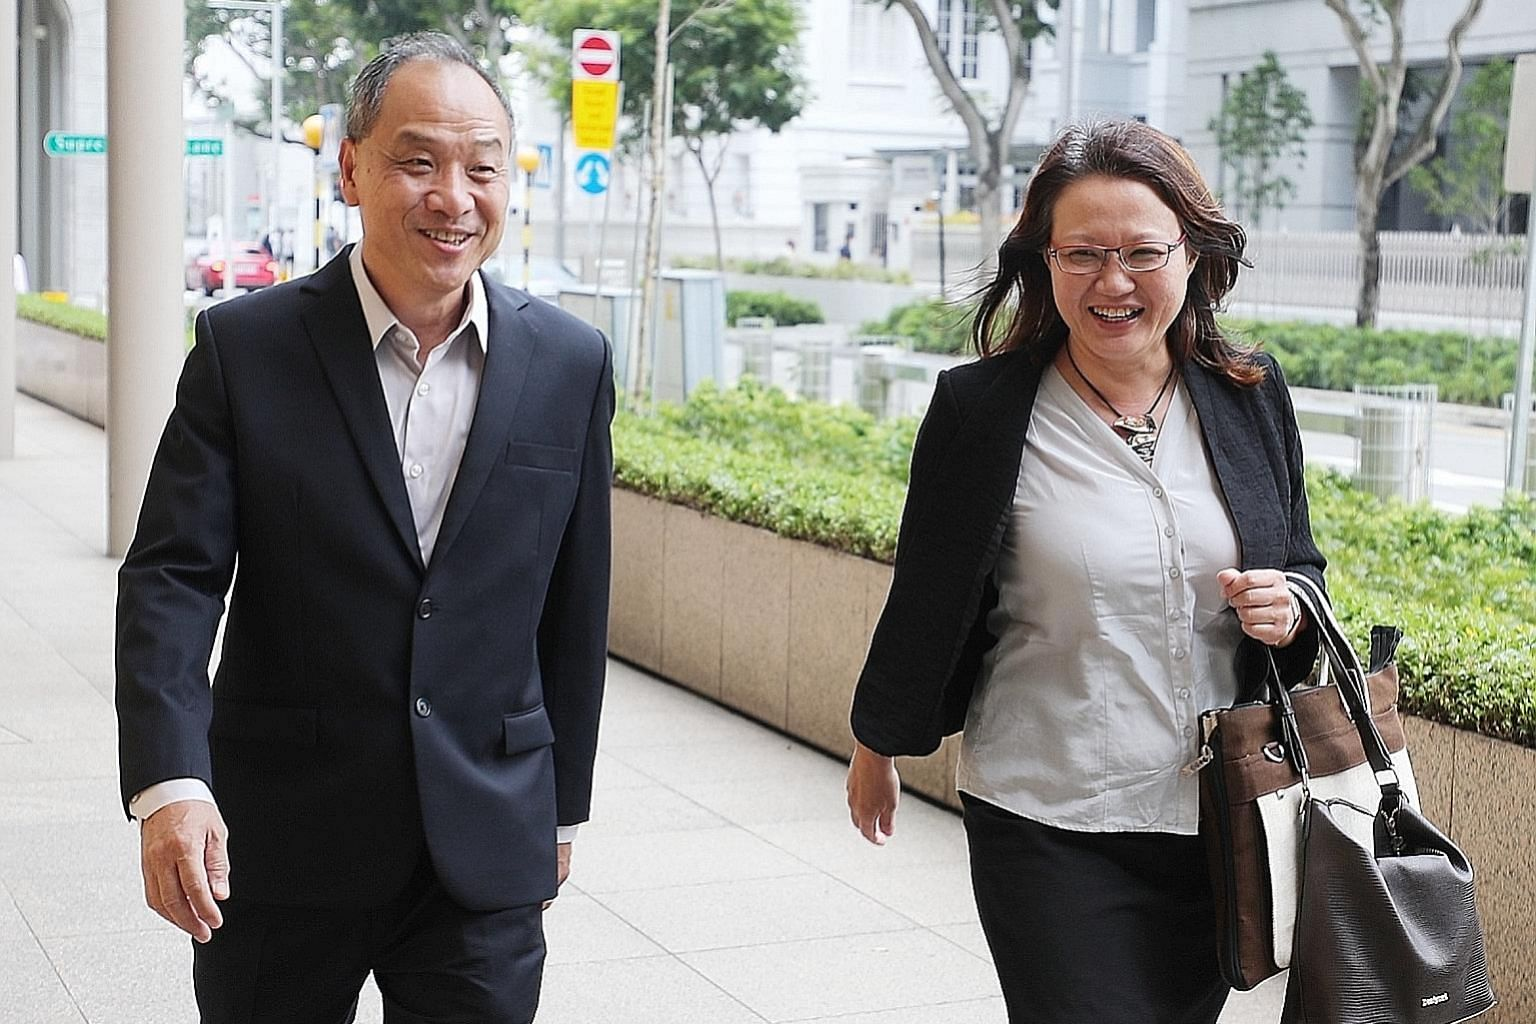 Former Workers' Party chief Low Thia Khiang and WP chairman Sylvia Lim at the Supreme Court yesterday. The eighth day of a multimillion-dollar lawsuit saw sharp exchanges as Senior Counsel Davinder Singh cross-examined Mr Low before a packed courtroo